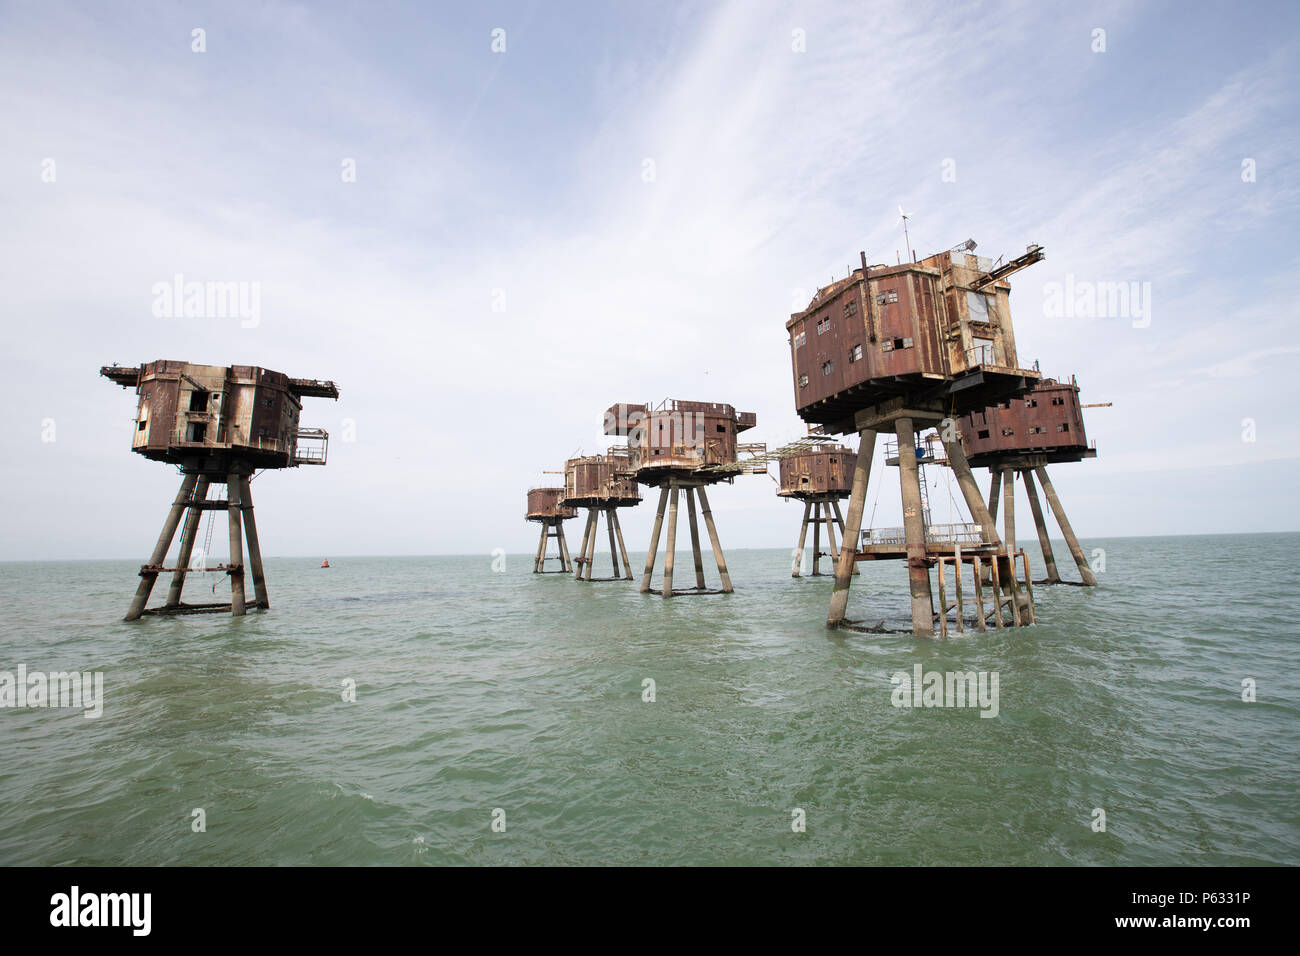 Maunsell Forts - Red Sands sea forts now abandoned - Stock Image